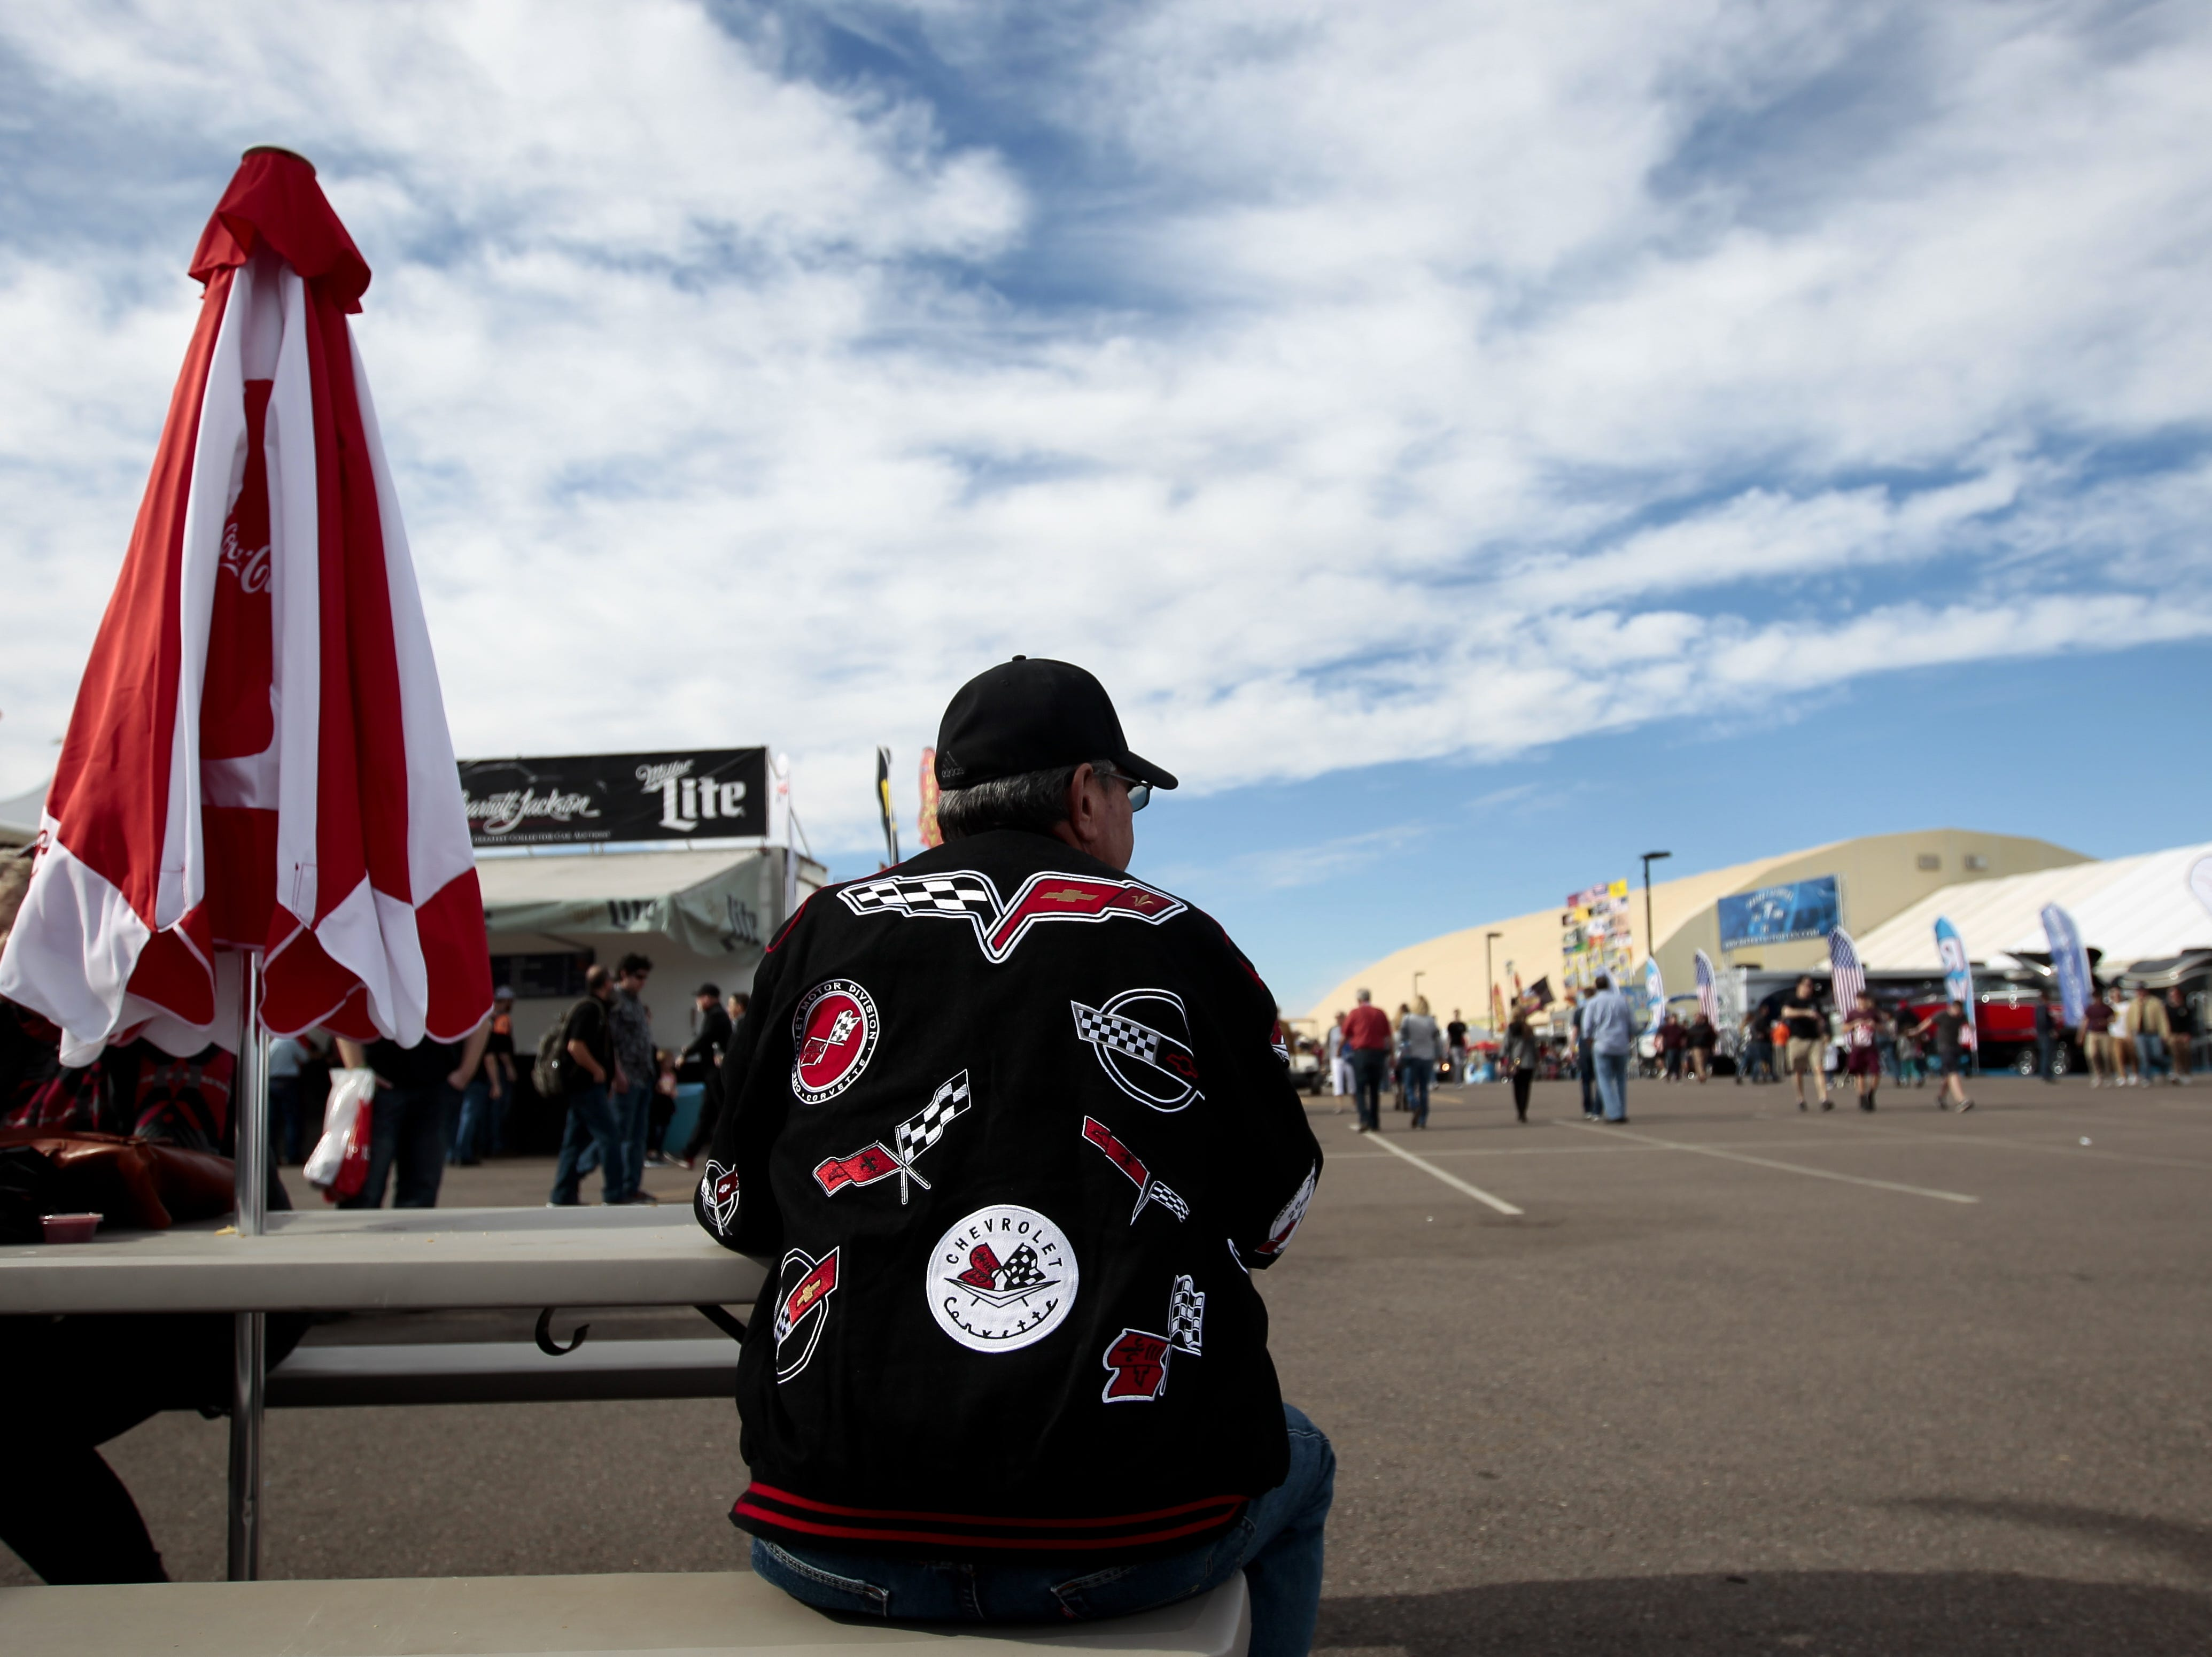 A man sits outside a food vender at the Barrett-Jackson Car Auction on Jan. 12, the first day of the event.